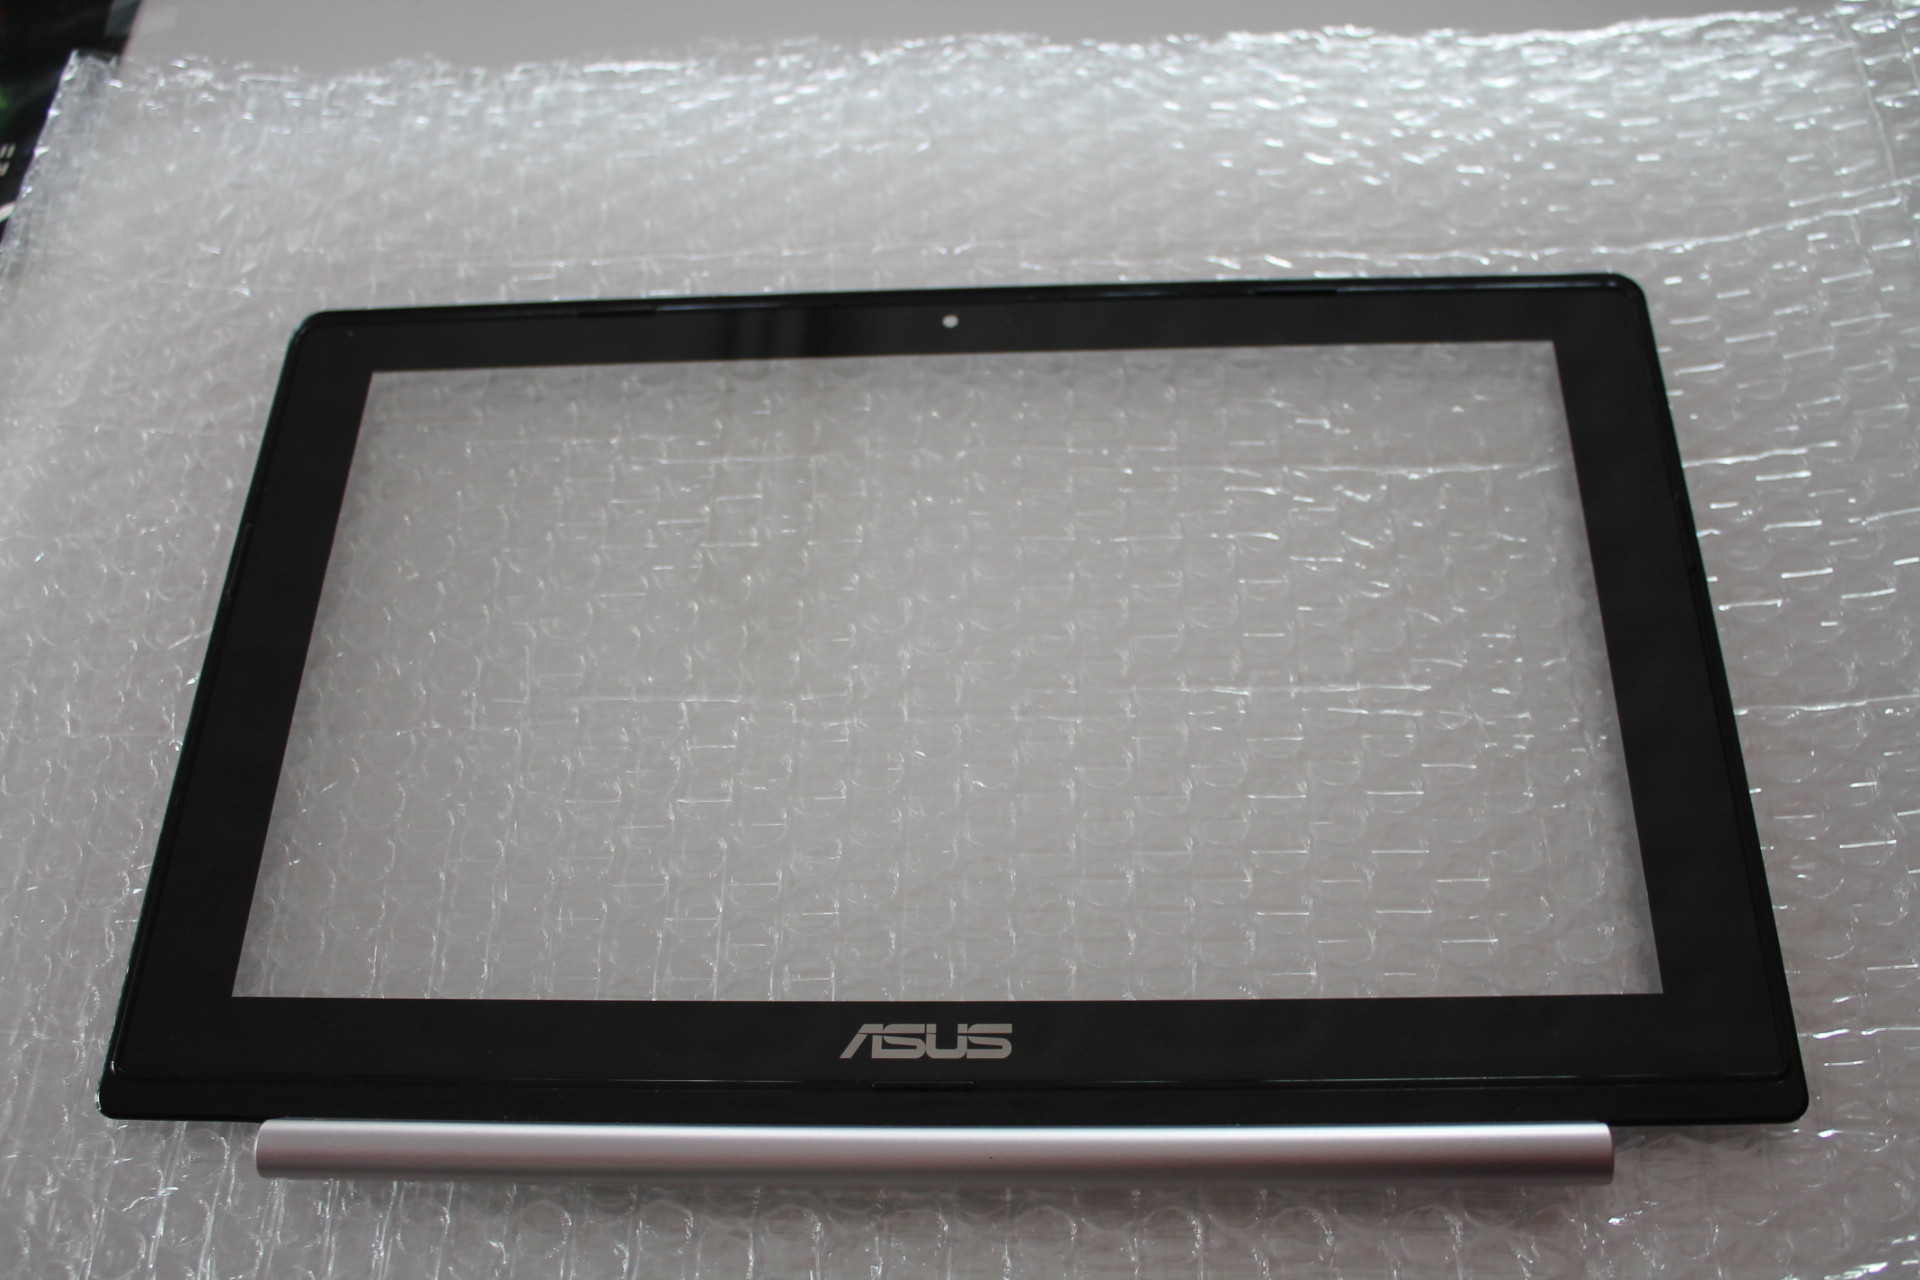 ASUS S200 DRIVERS WINDOWS 7